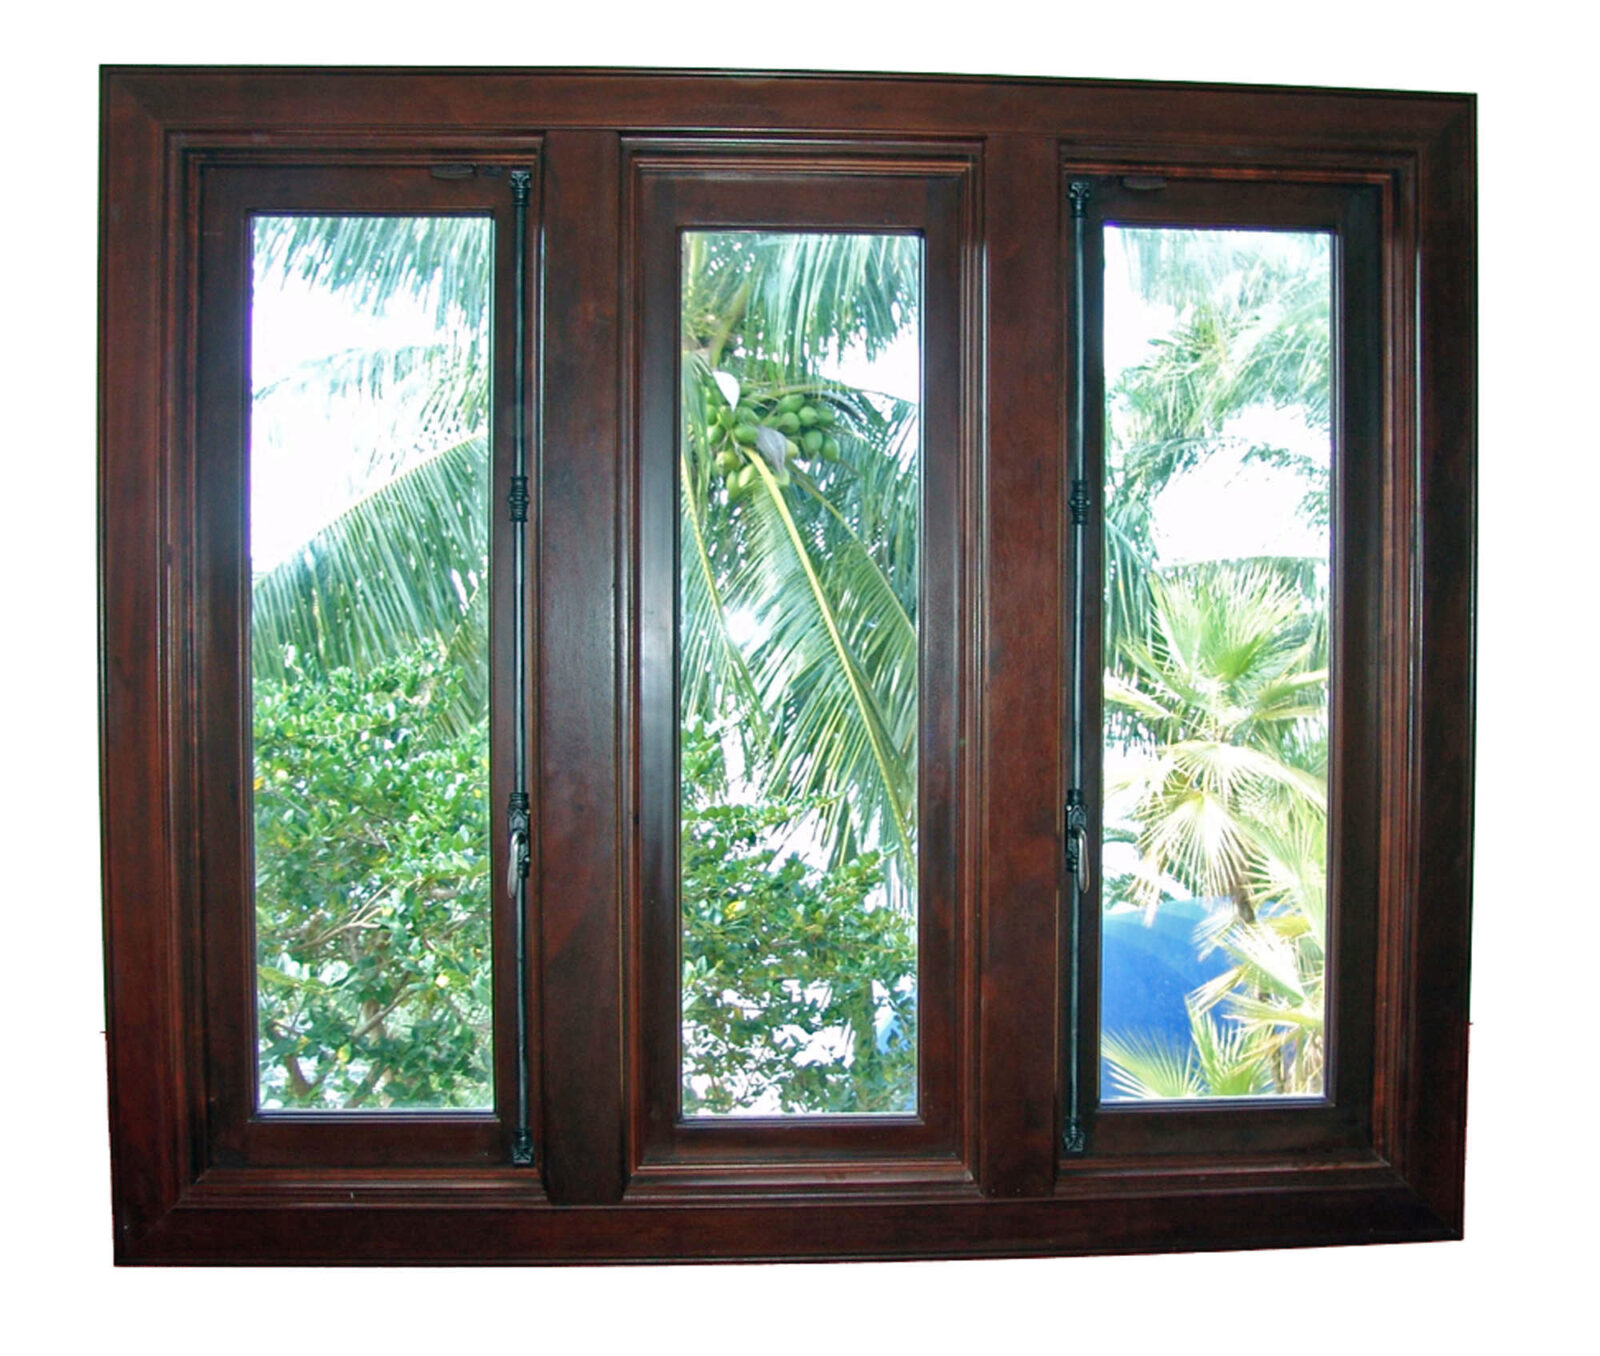 NURMI ISLAN CASEMENT AND FIXED WINDOWS